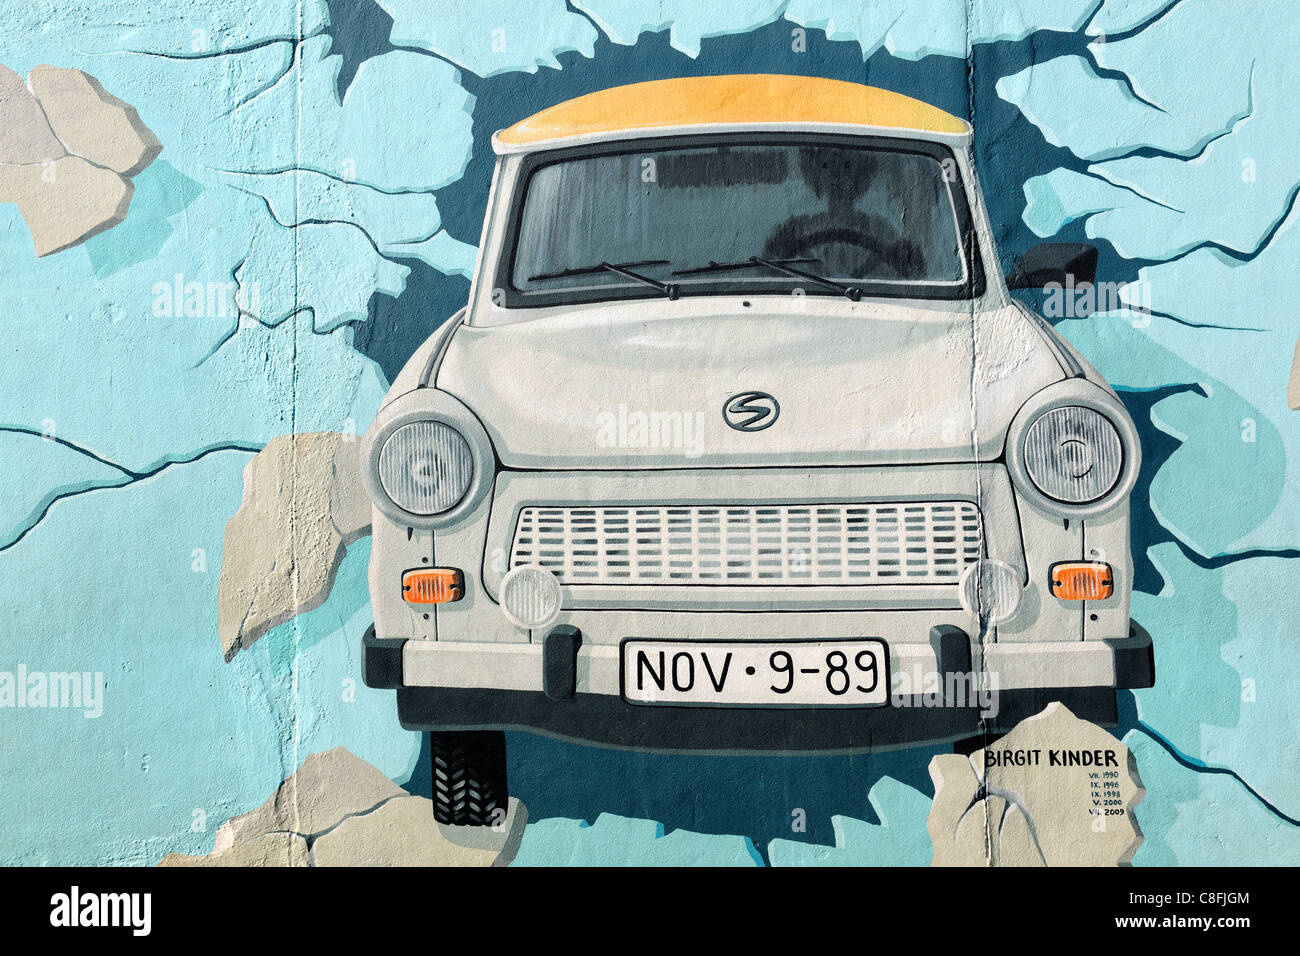 Trabant Clipart Mural Of Trabant Car Breaking Through Berlin Wall Stock